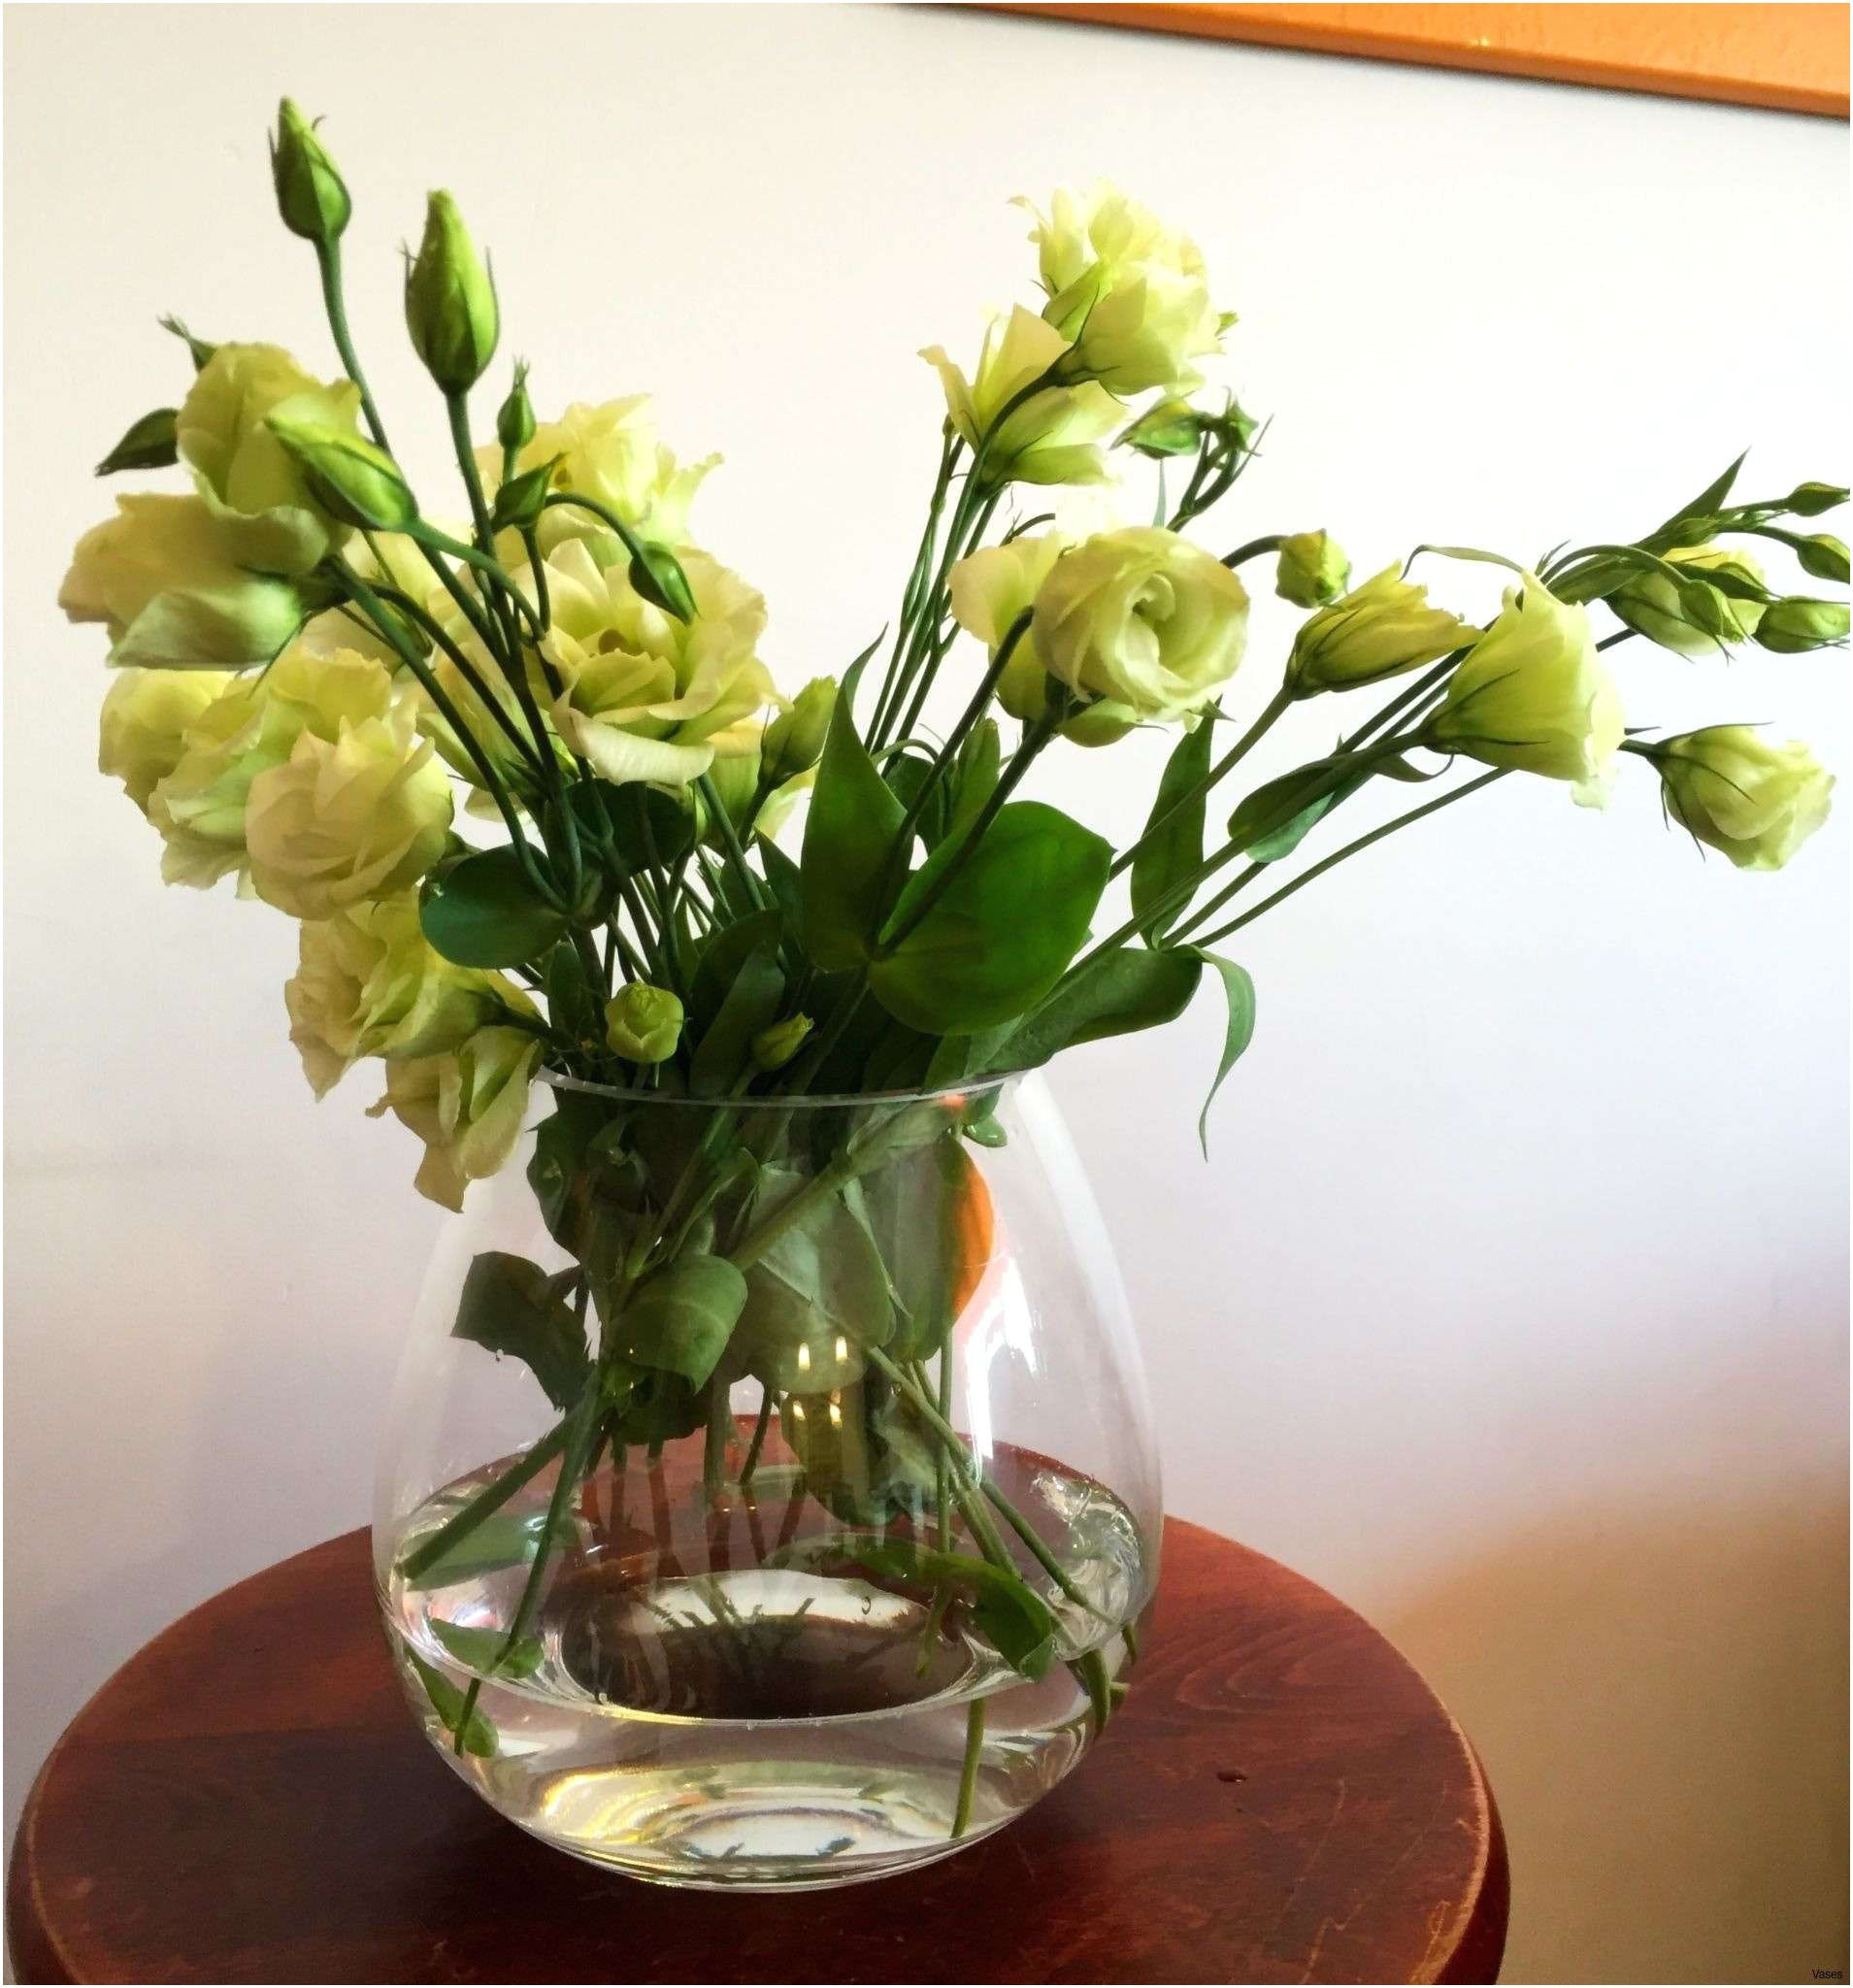 flower vase pic of green glass vase images tiger food phenomenal flower vase table 04h in green glass vase images tiger food phenomenal flower vase table 04h vases tablei 0d clipart